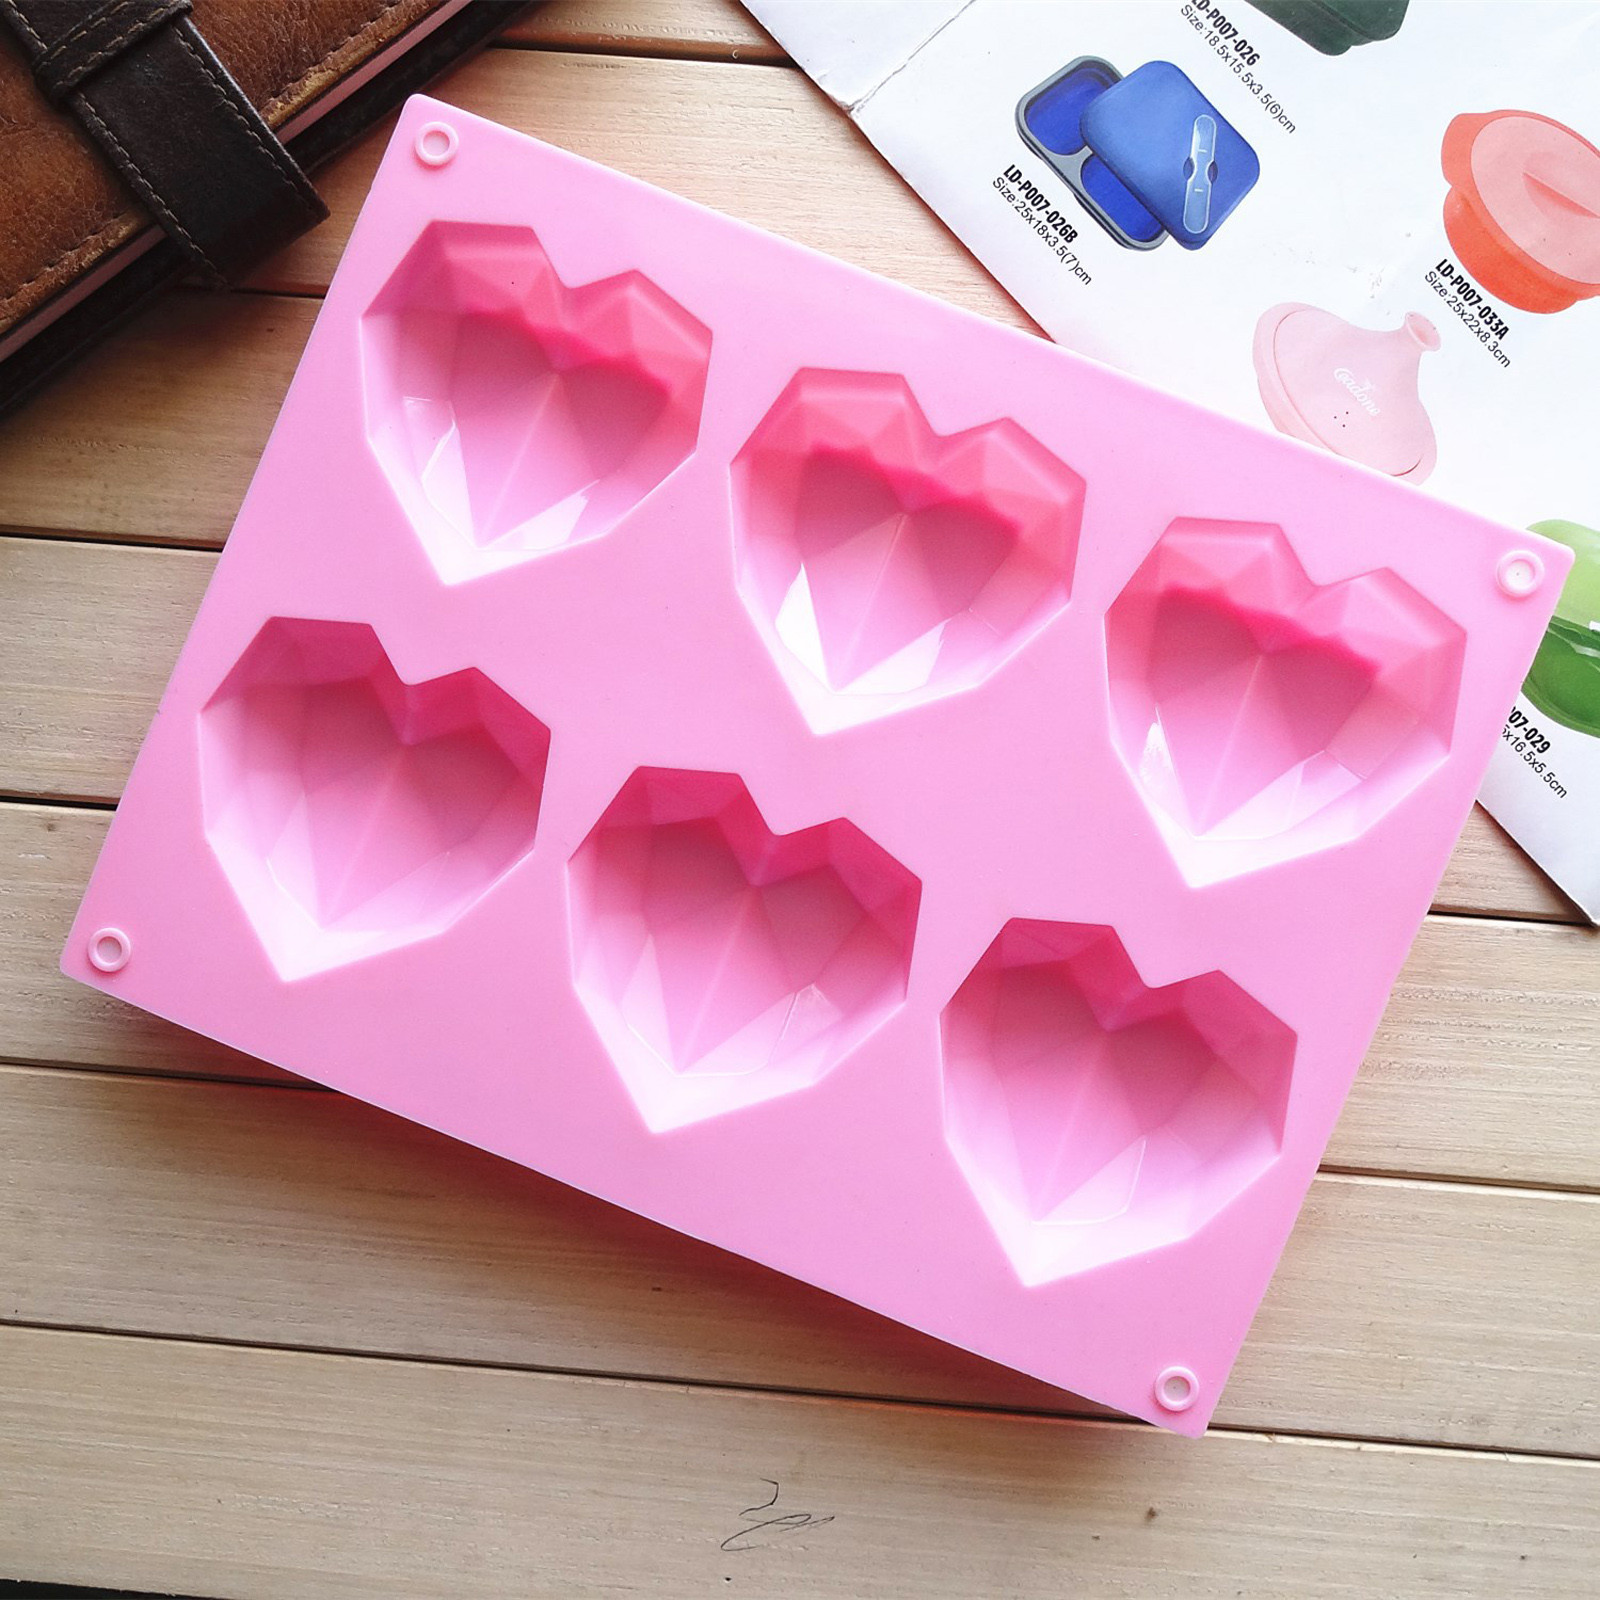 Heart-shaped Sphere Silicone Cake Mold Muffin Chocolate Cookie Baking Mould Pan